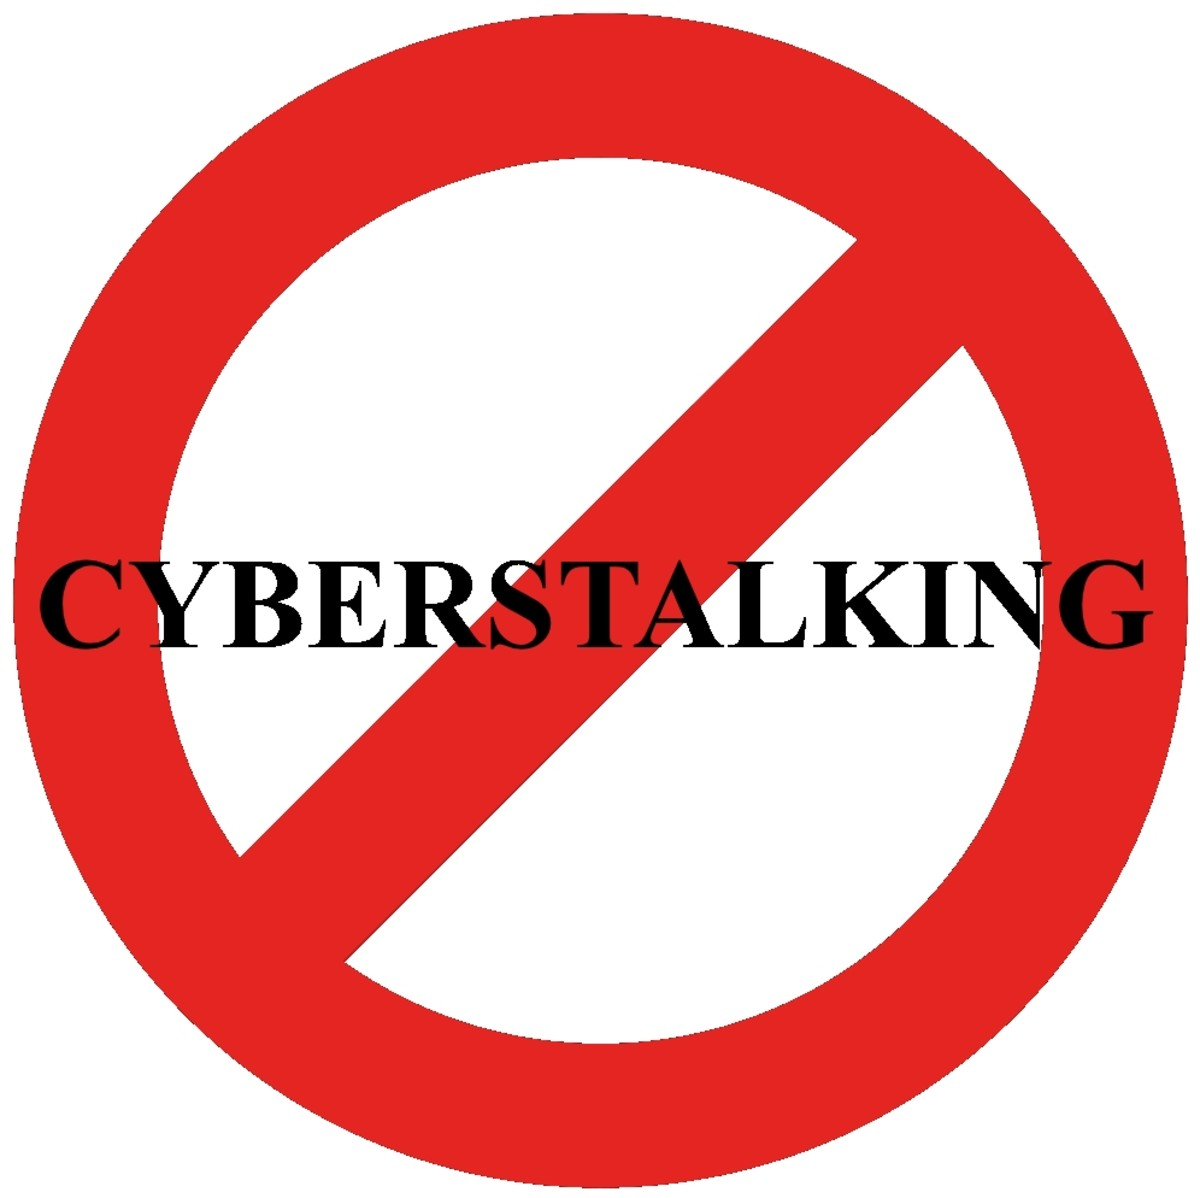 how-to-file-a-legal-case-against-a-stalker-harassement